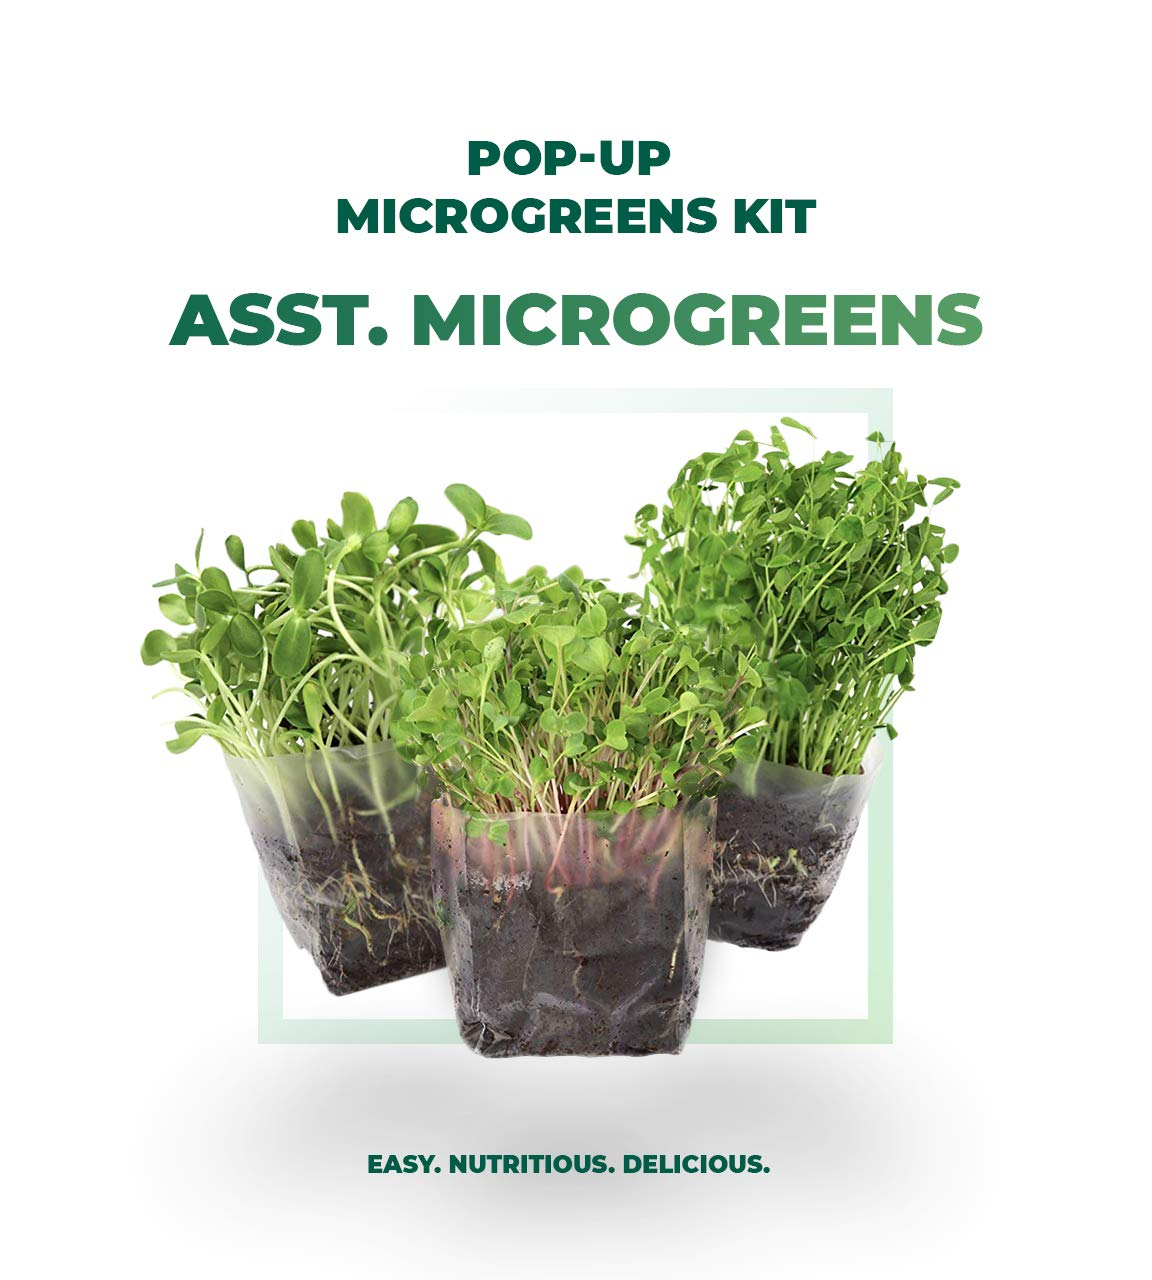 Indoor Microgreens Seed Starter Vegan Growing Kit – Includes Assorted Seeds, 3qts Organic Fiber Potting Soil and Pop-Up Bag – Add Water and Grow Vegetables for Healthy Salads – by Window Garden